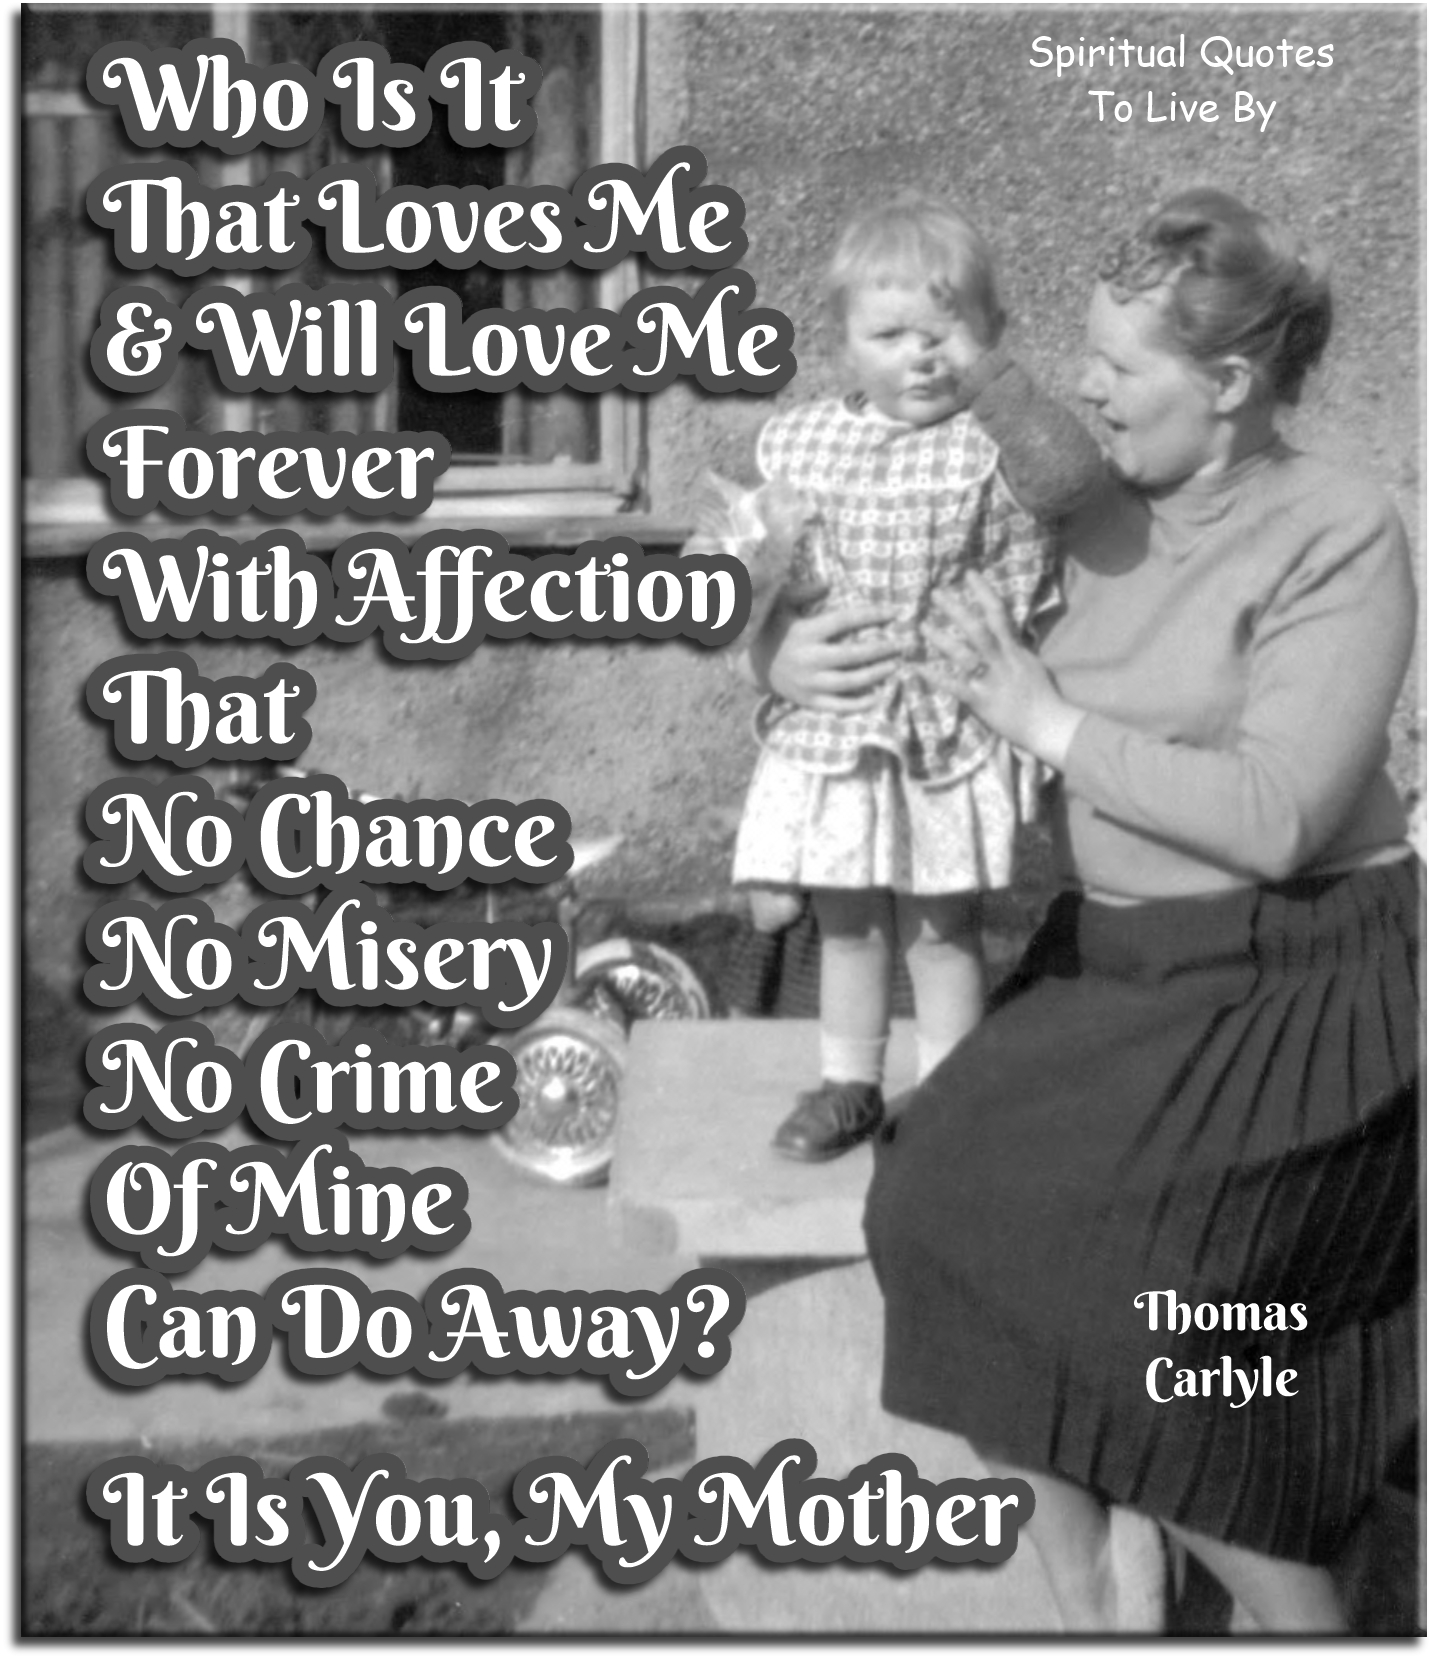 Thomas Carlyle quote: Who is it that loves me and will love me forever, with affection that no chance, no misery, no crime of mine can do away?  It is you, my mother. - Spiritual Quotes To Live By